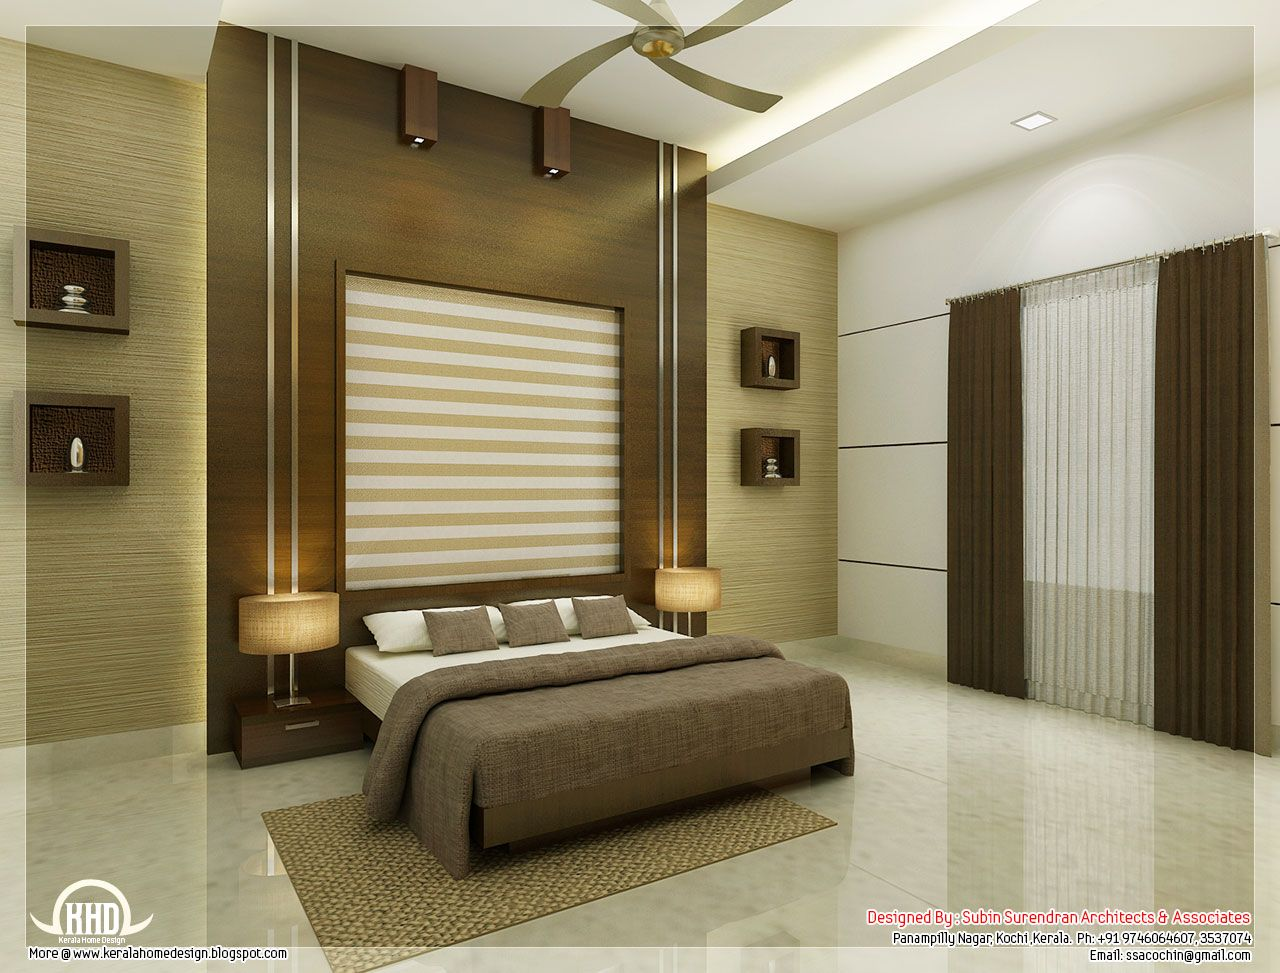 Superbe Need Some Fresh Bedroom Decorating Ideas? Use These Beautiful Bedroom  Designs To Inspire Your New Dream Room. Plan A Well Bedroom Design That  Will Provide ...